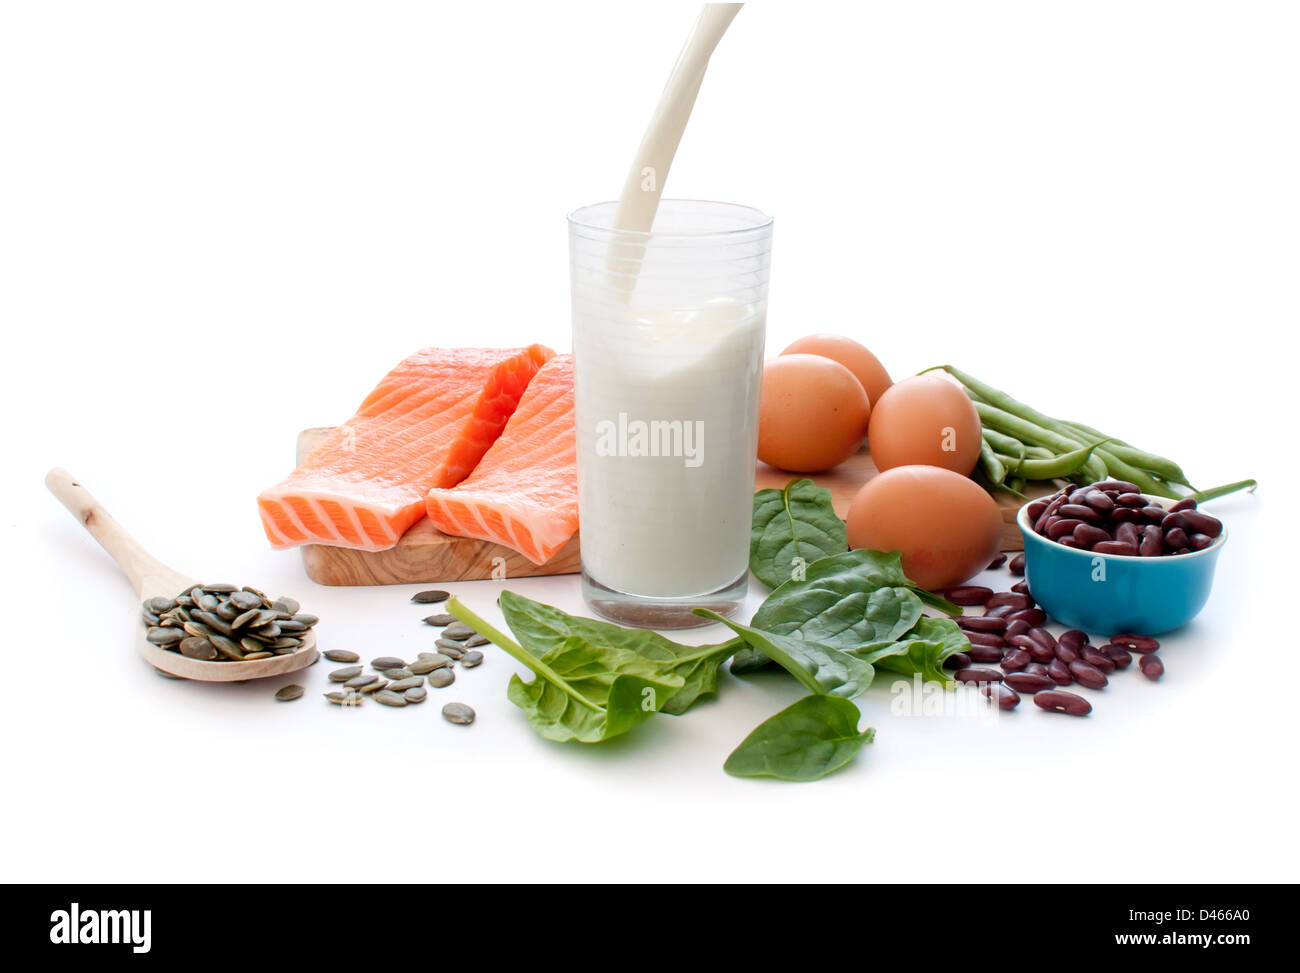 Healthy protein diet - Stock Image